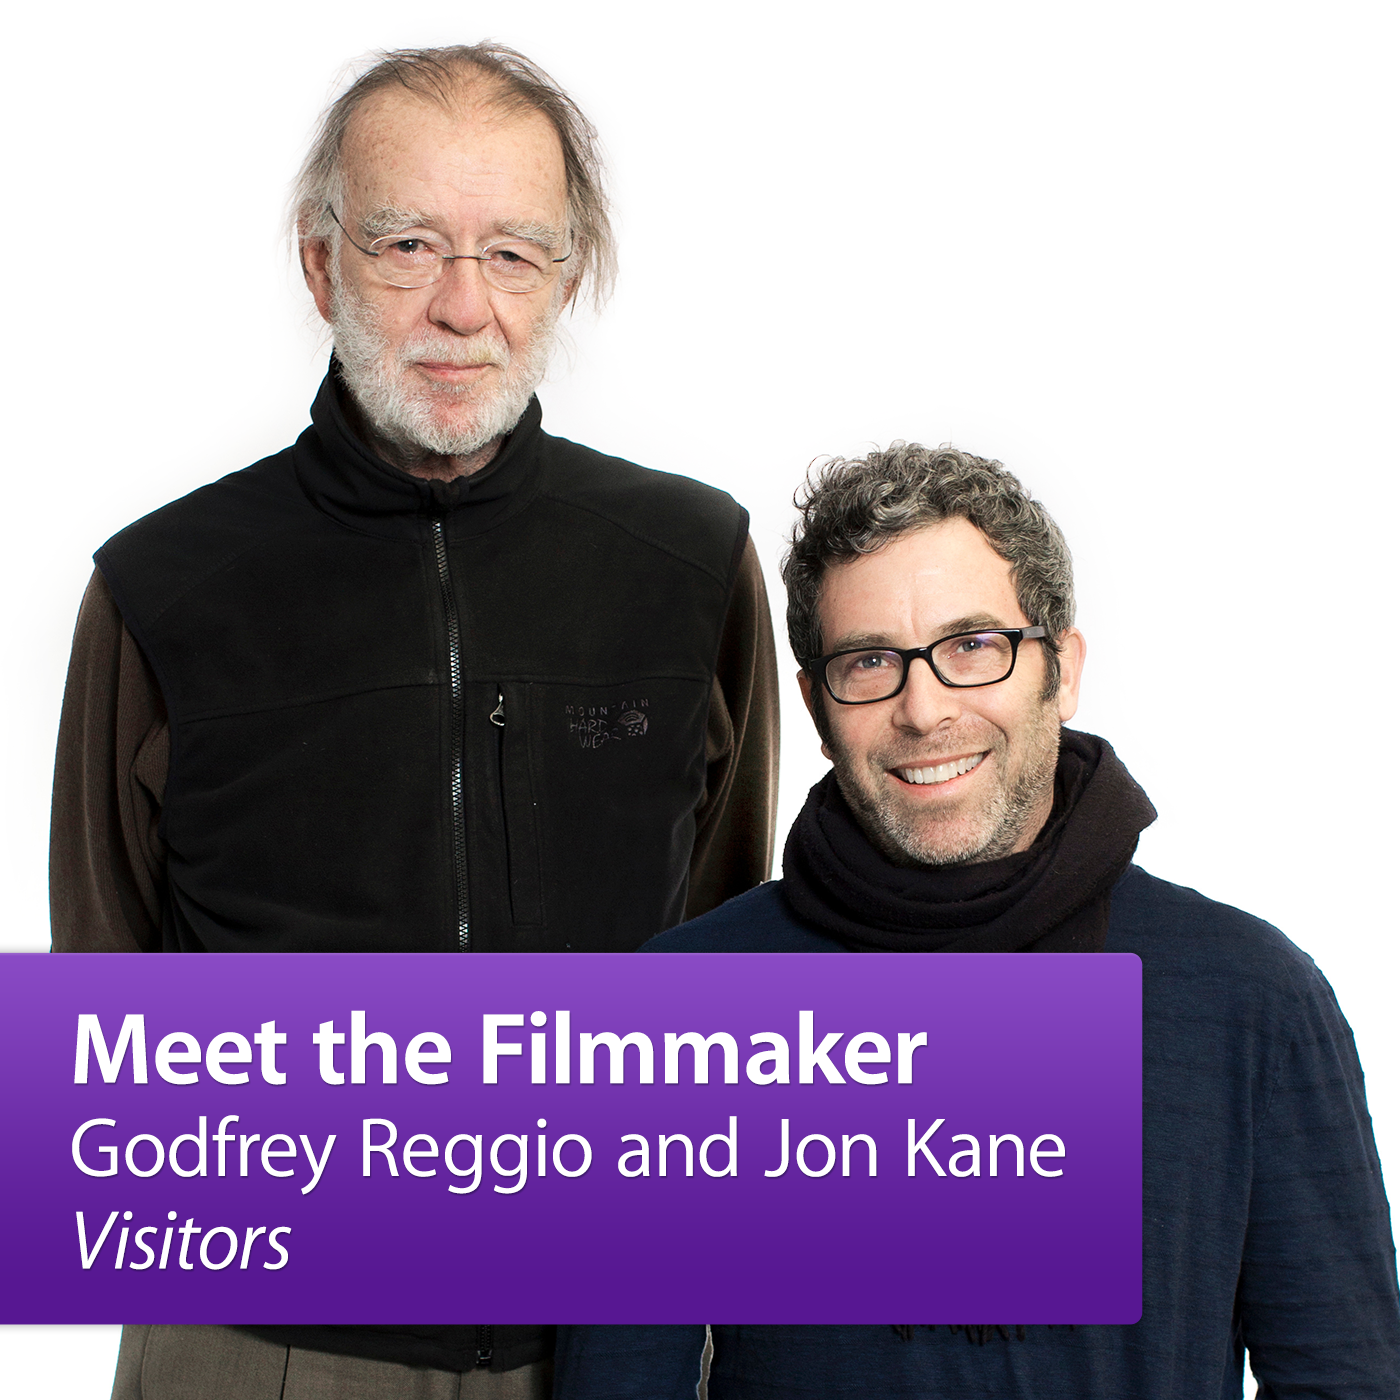 Godfrey Reggio and Jon Kane: Meet the Filmmaker